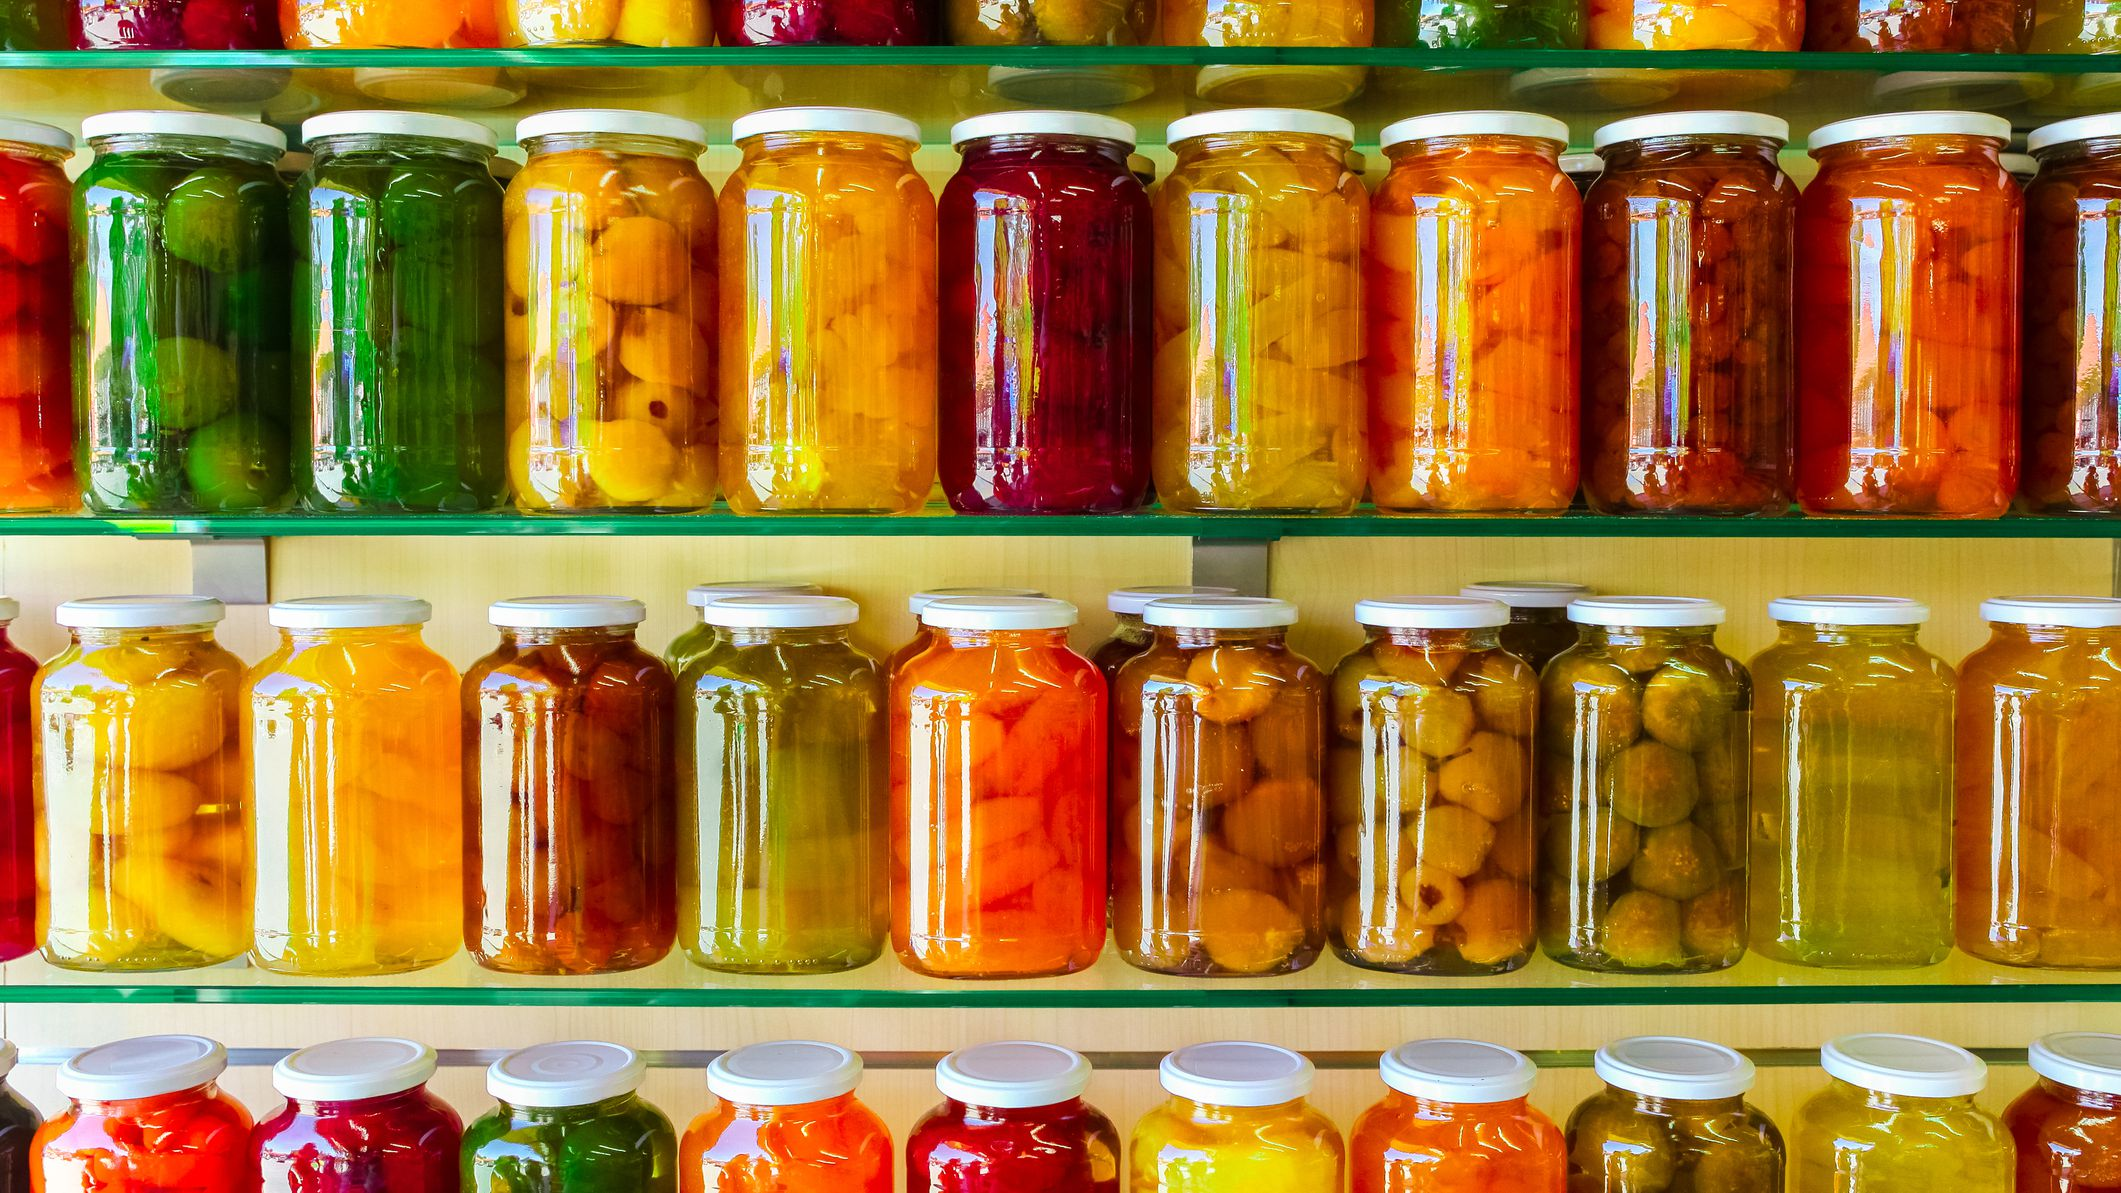 Learn Why Mormons Are Directed To Store A Year Of Food